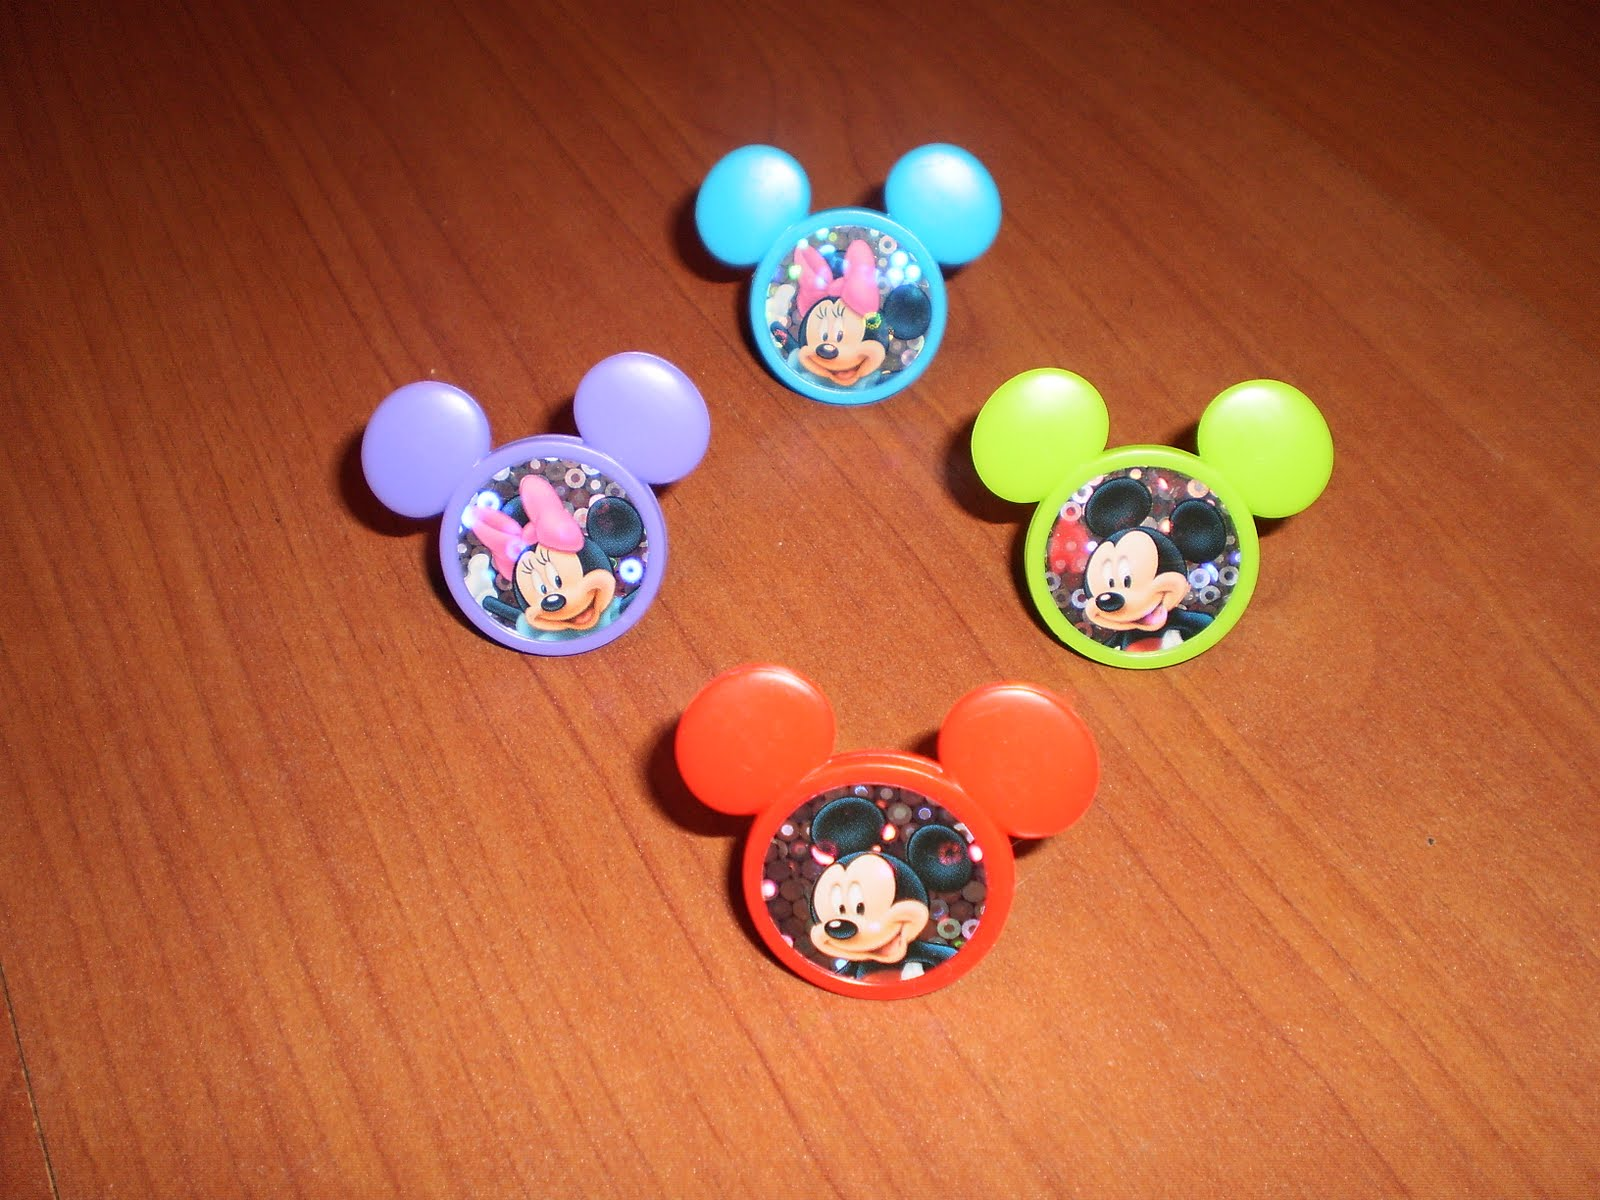 Pin Mickey Mouse Souvenirs Cumpleanos on Pinterest